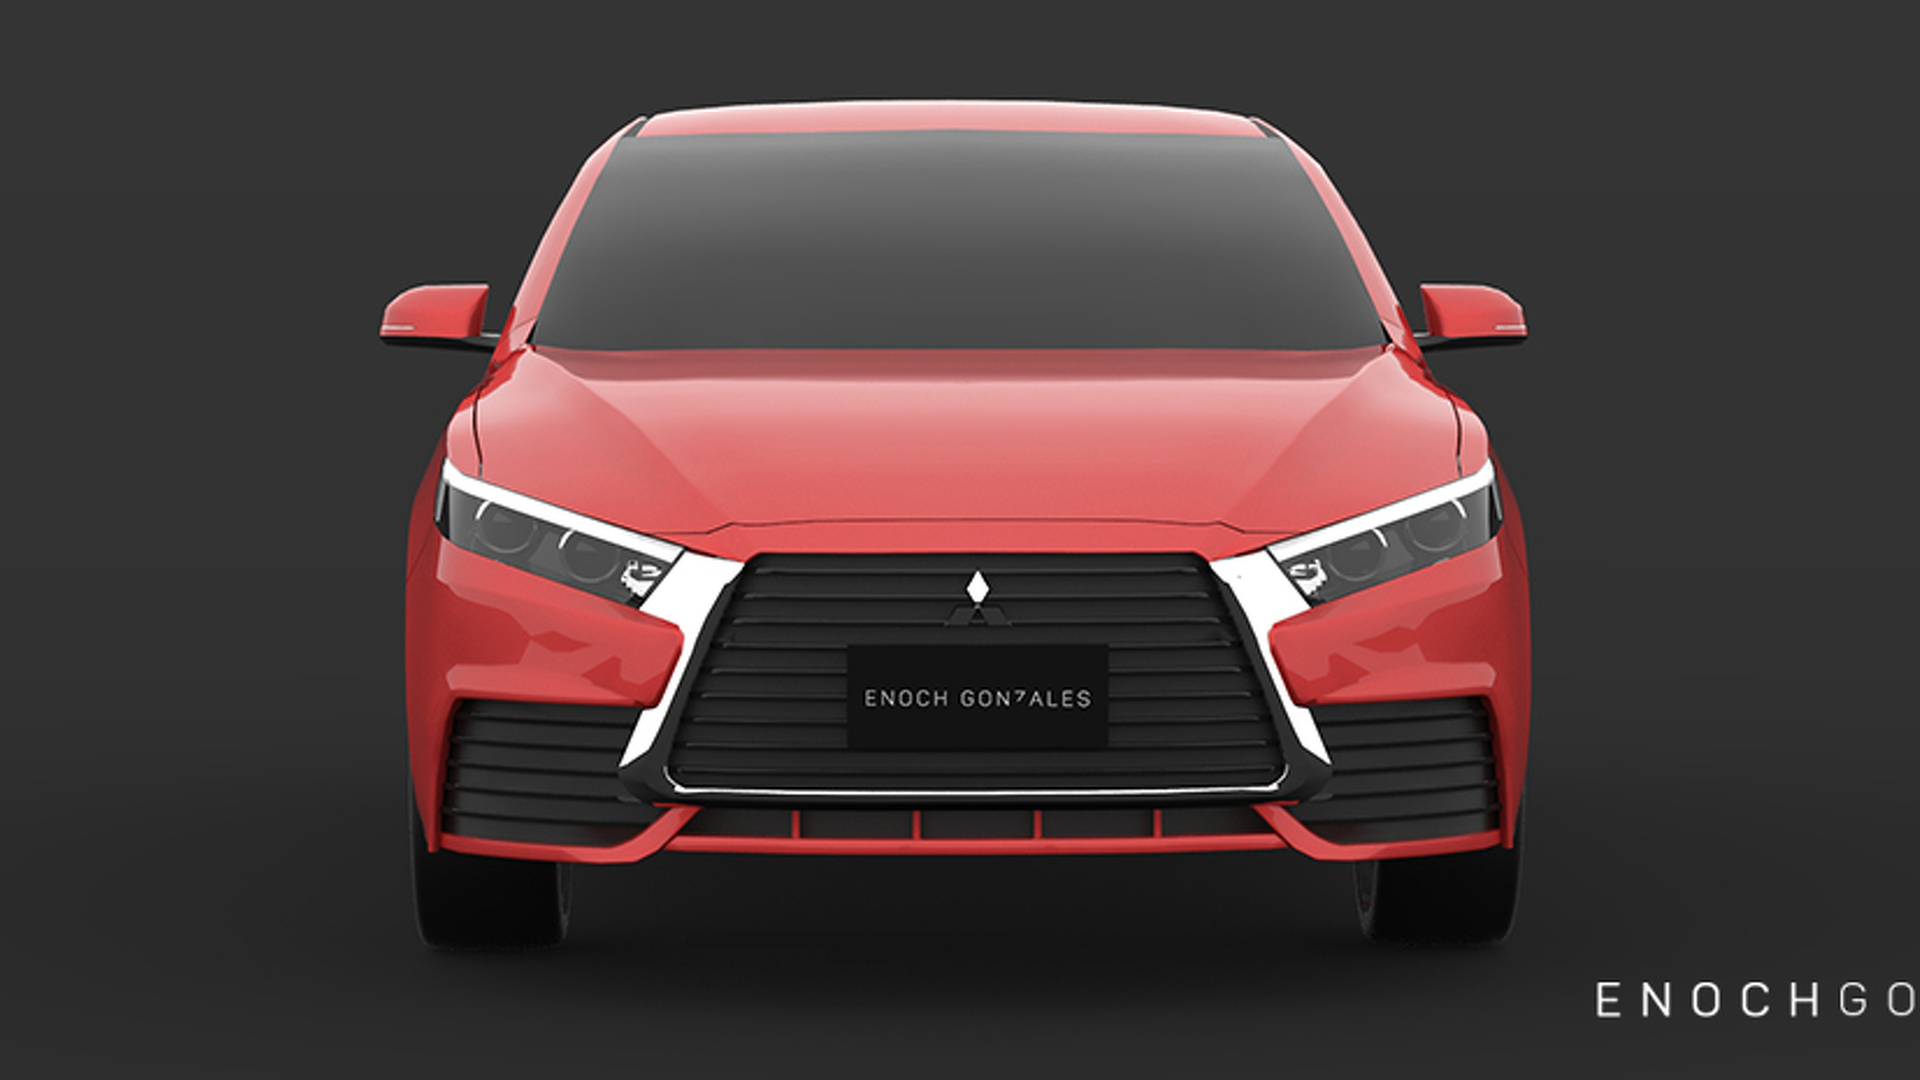 2018 Mitsubishi Lancer Imagined Will Never Happen